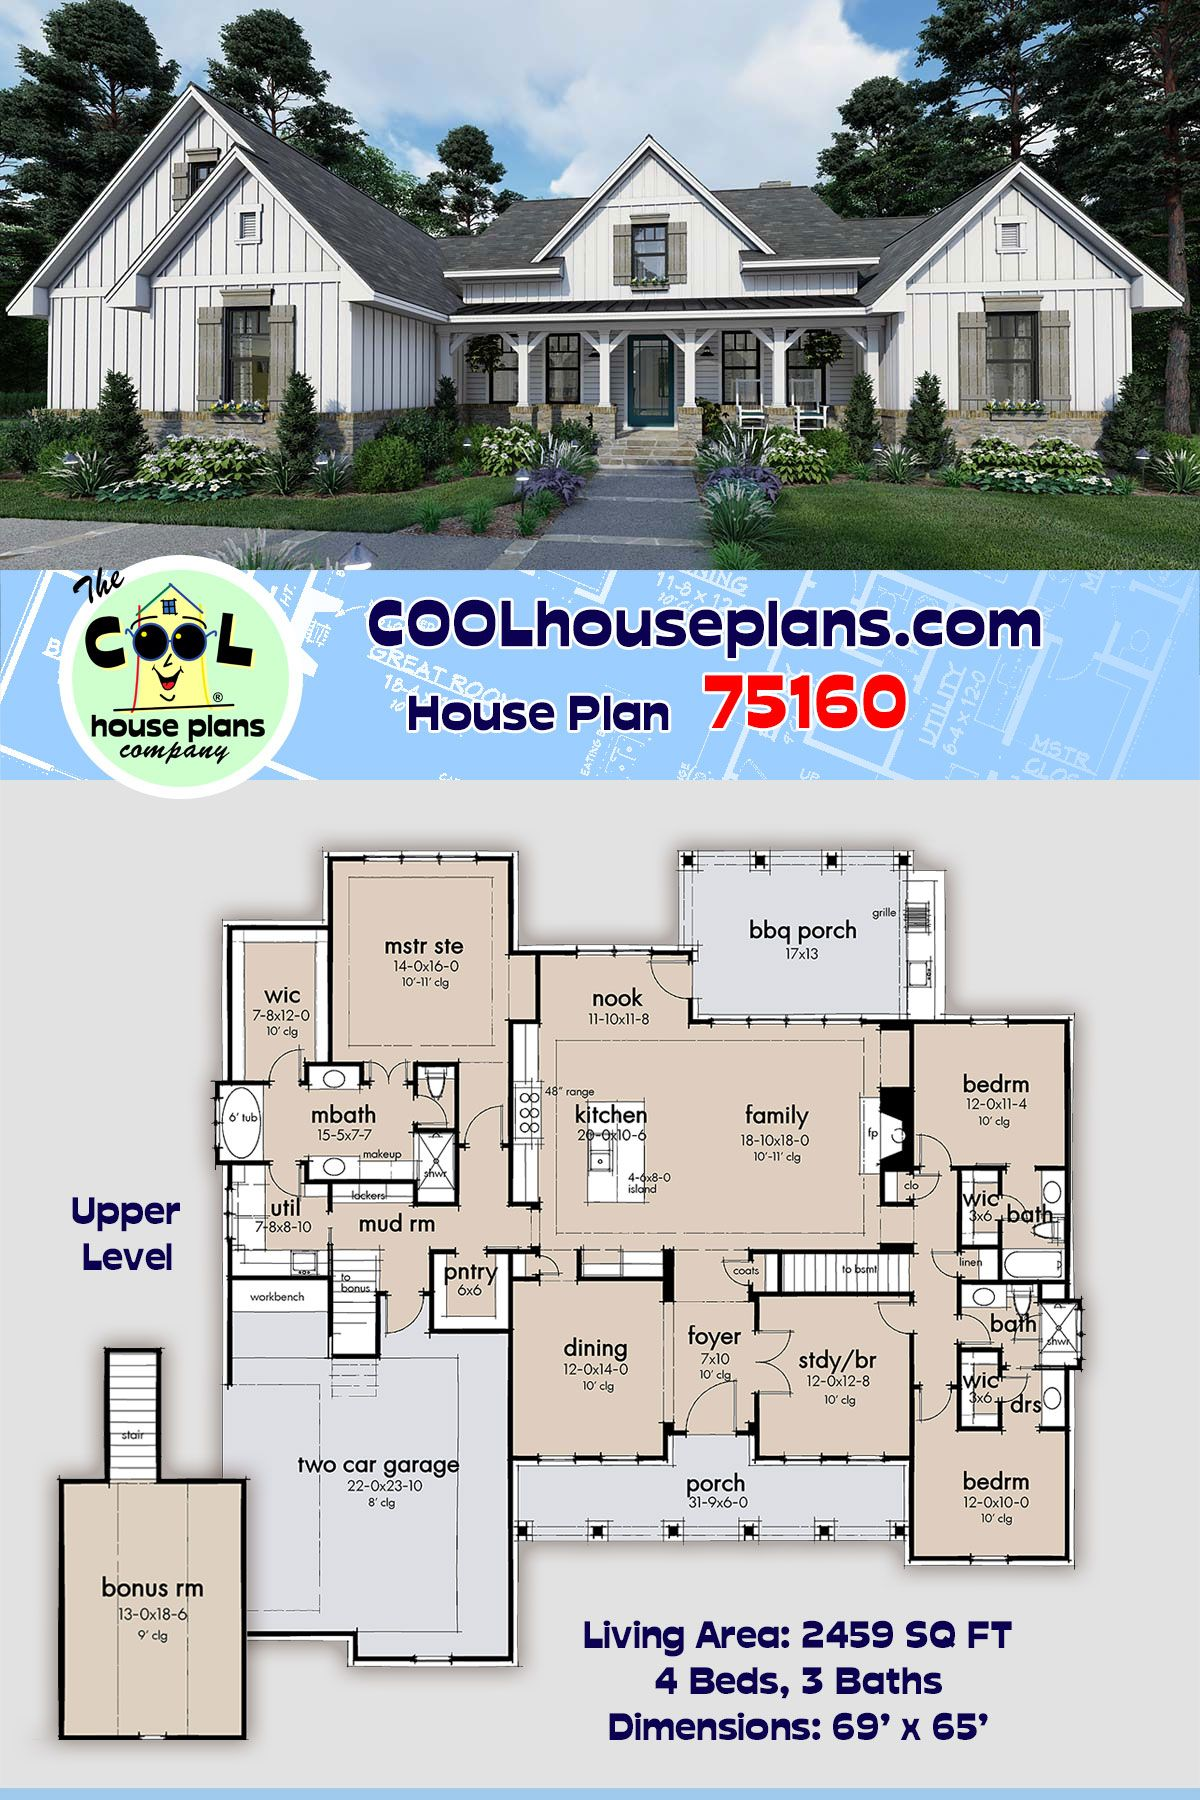 Southern Style House Plan 75160 With 4 Bed 3 Bath 2 Car Garage House Plans Farmhouse Plans Modern Farmhouse Plans